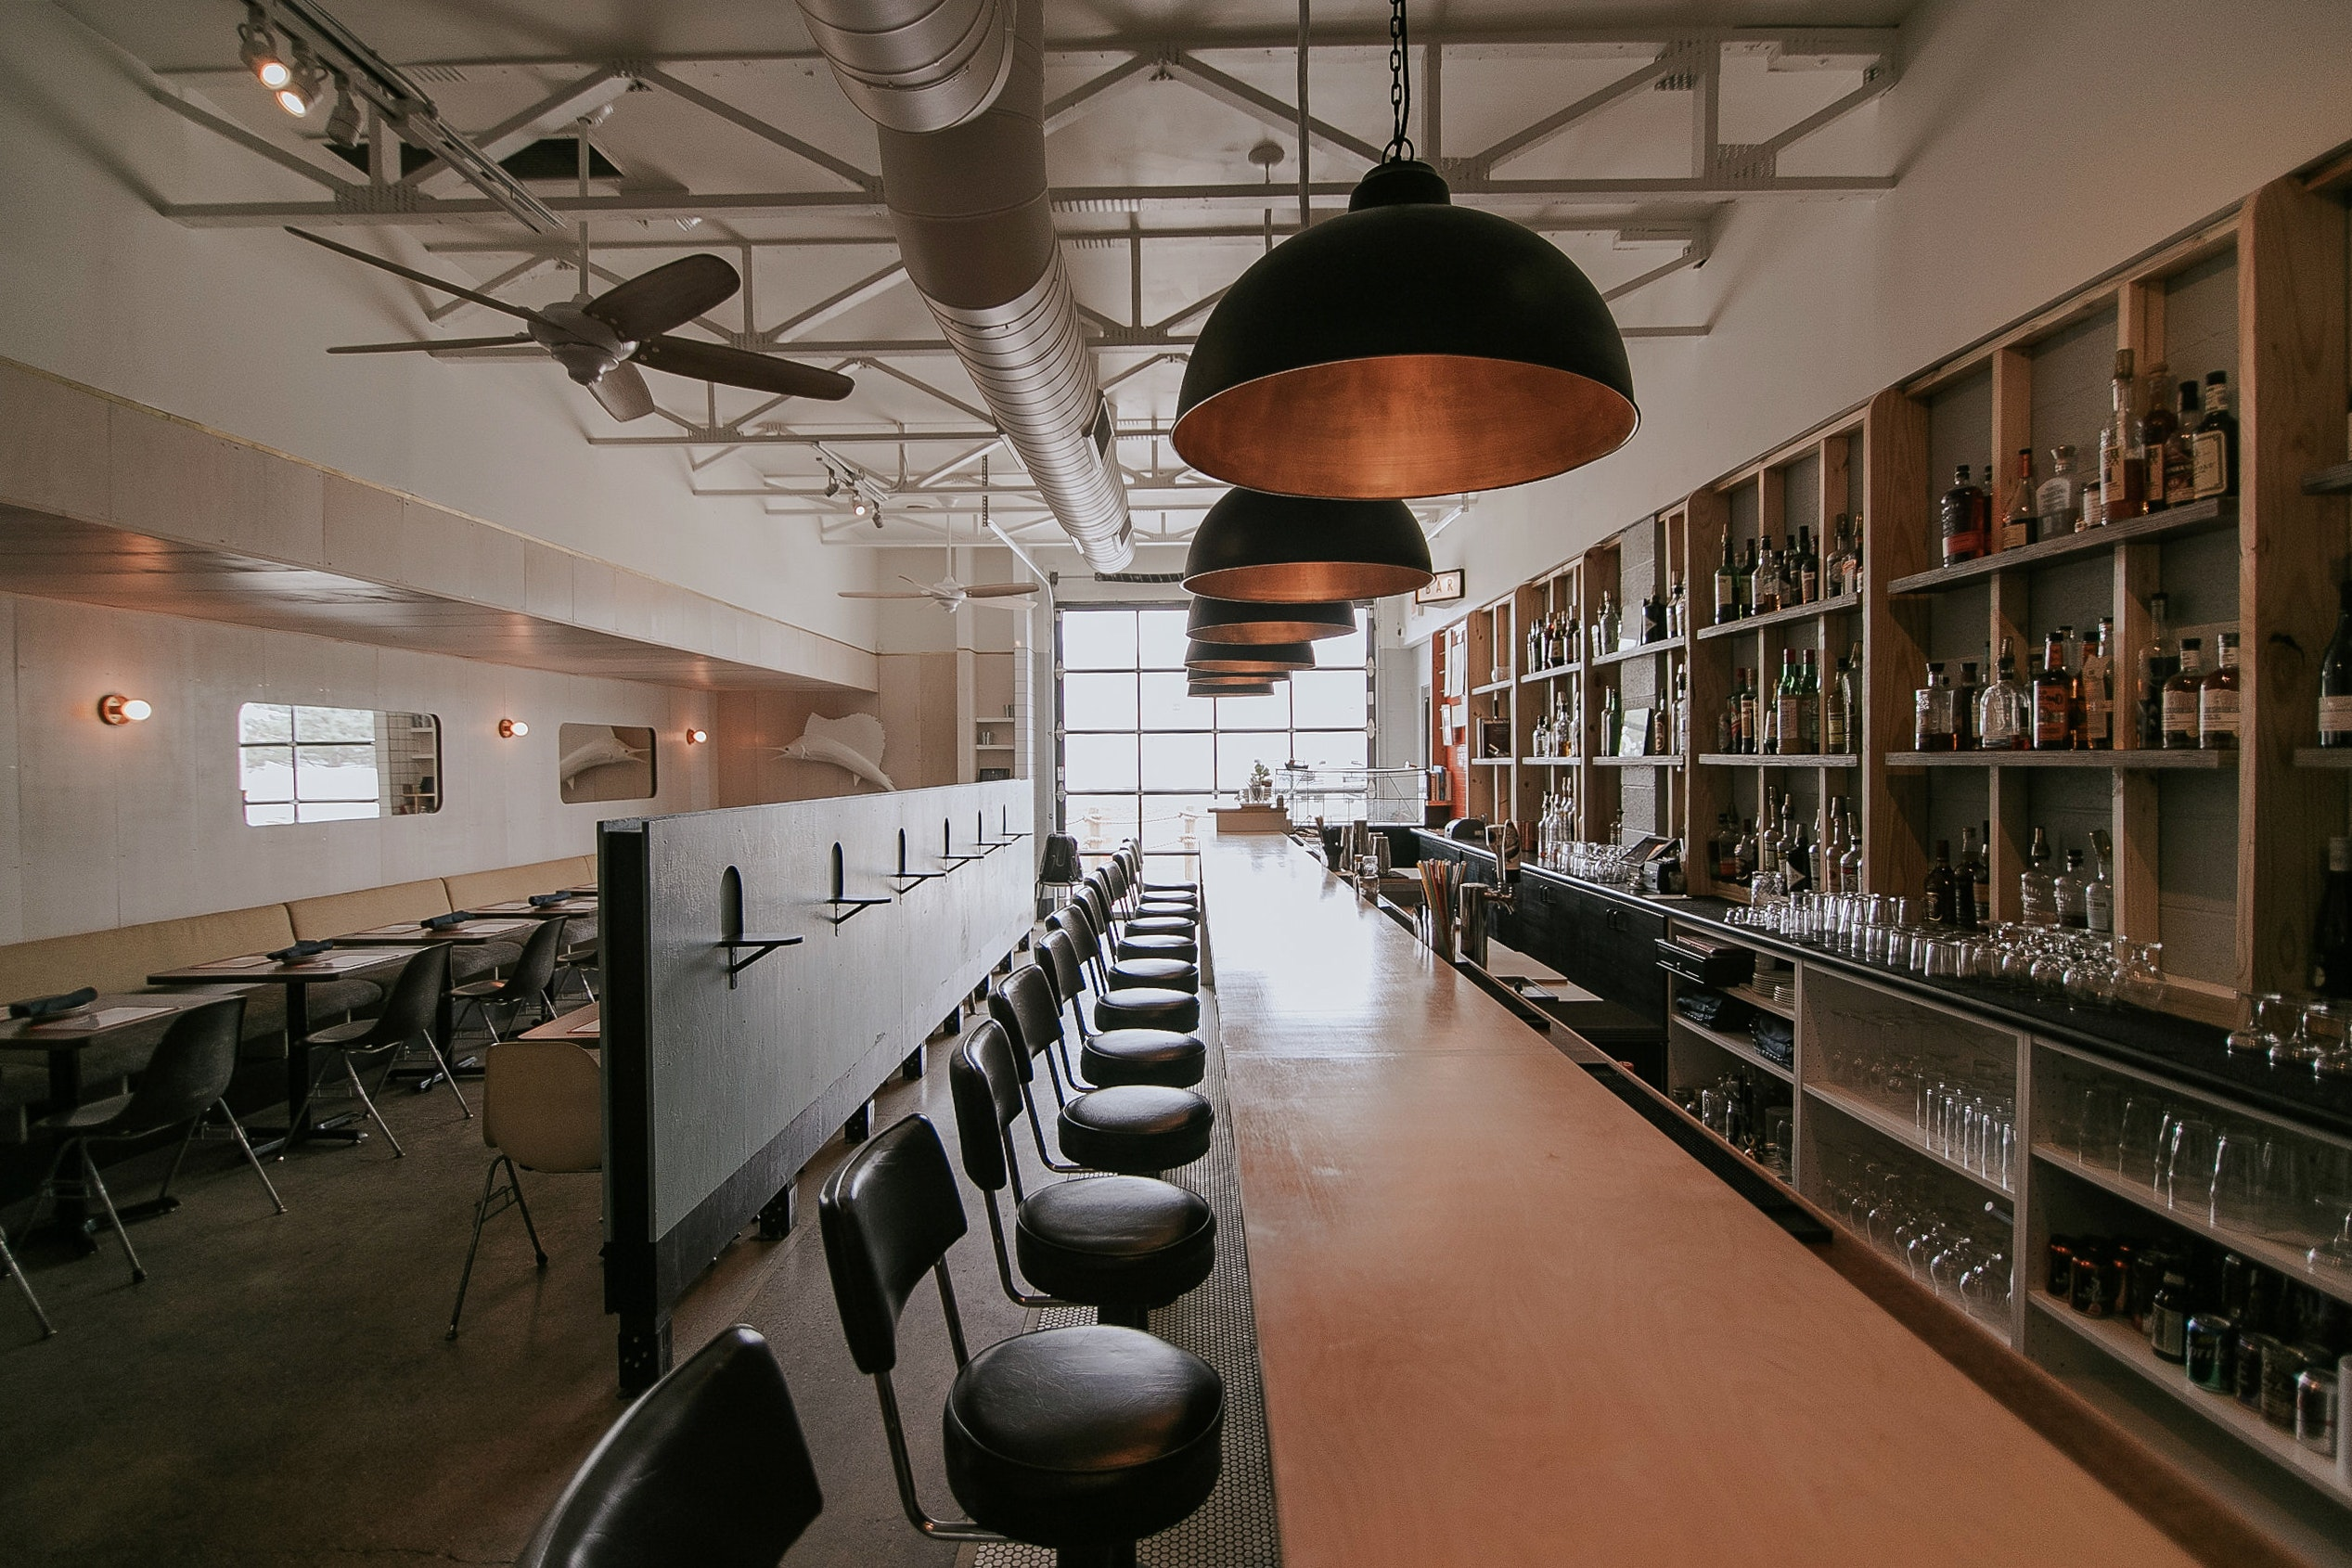 With the help of esteemed design firm five/eighths Architecture, Eli Boyer gave an old garage new life as a seafood restaurant.